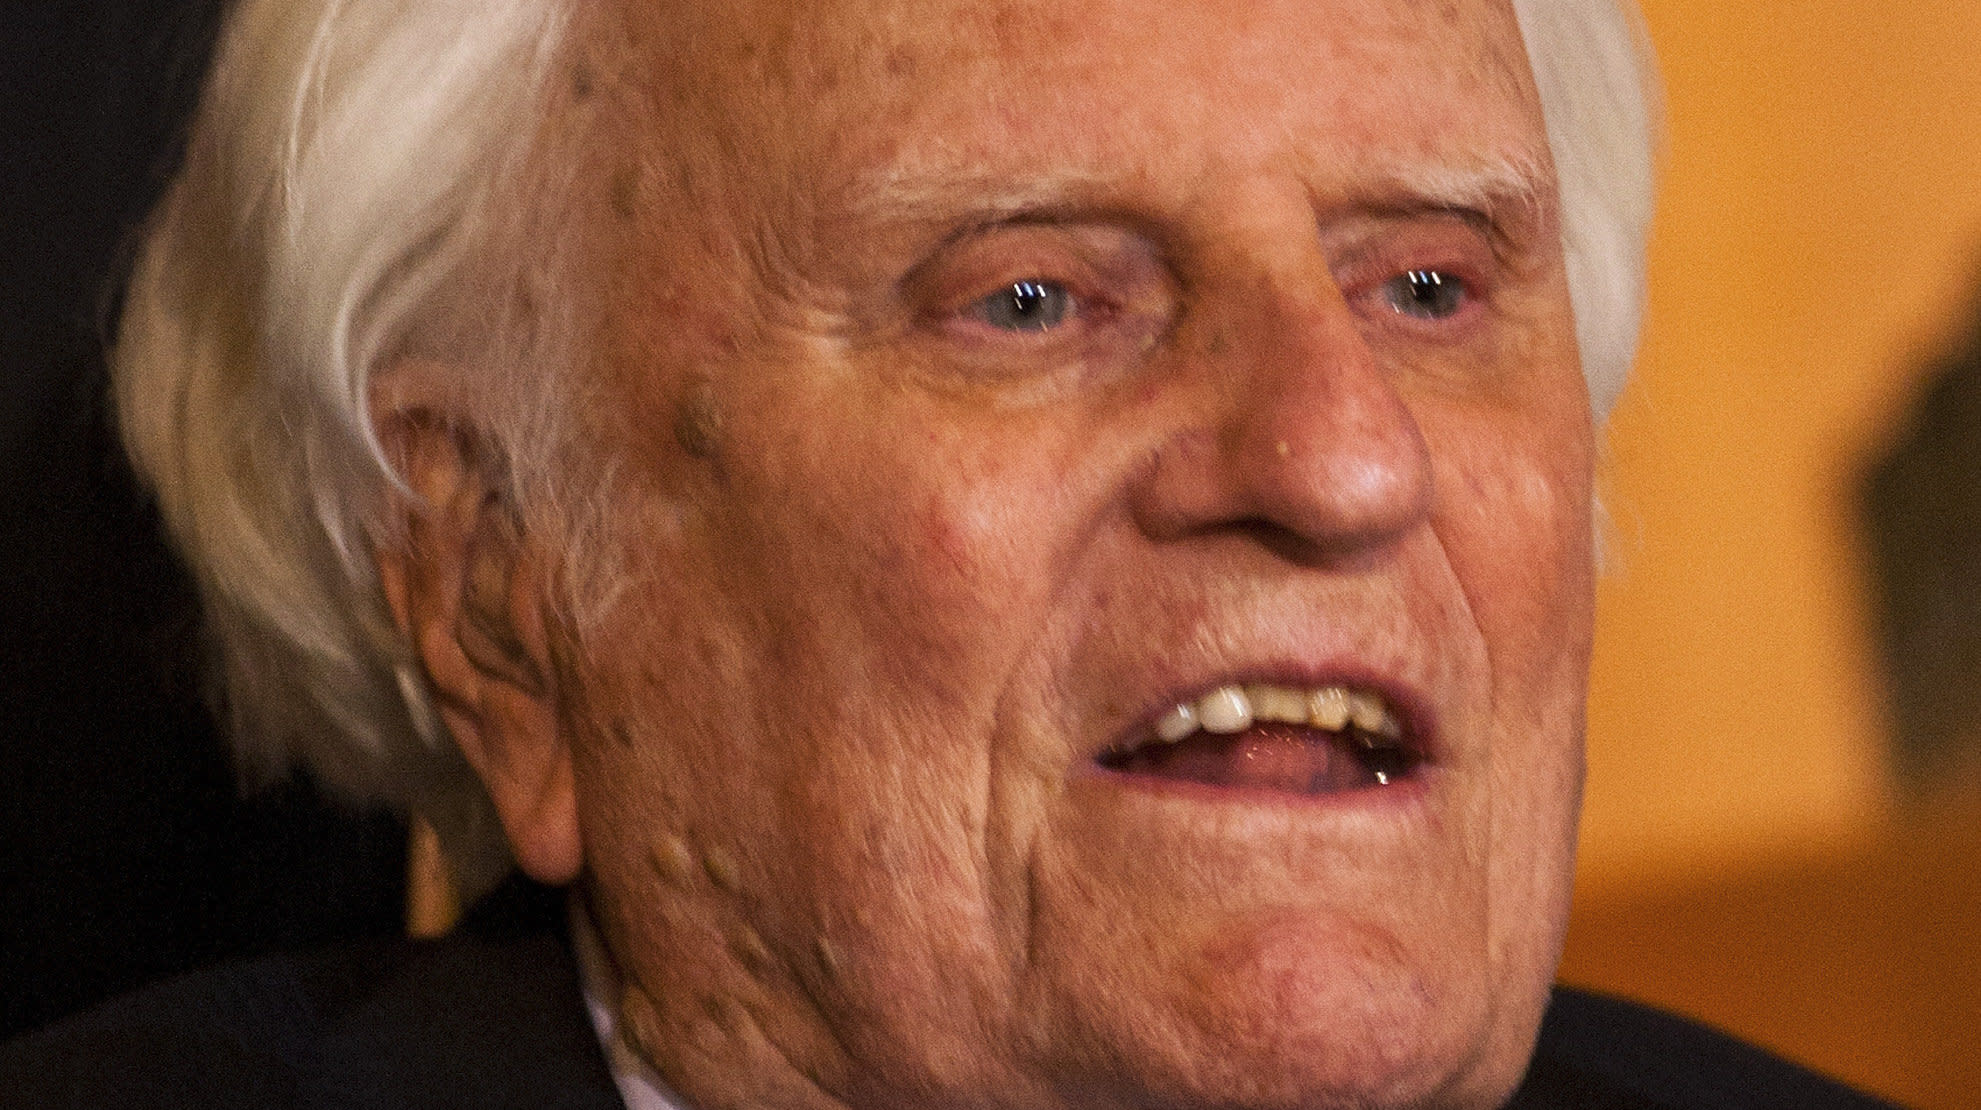 Billy Graham, 'America's Pastor' And Noted Televangelist, Dead At 99